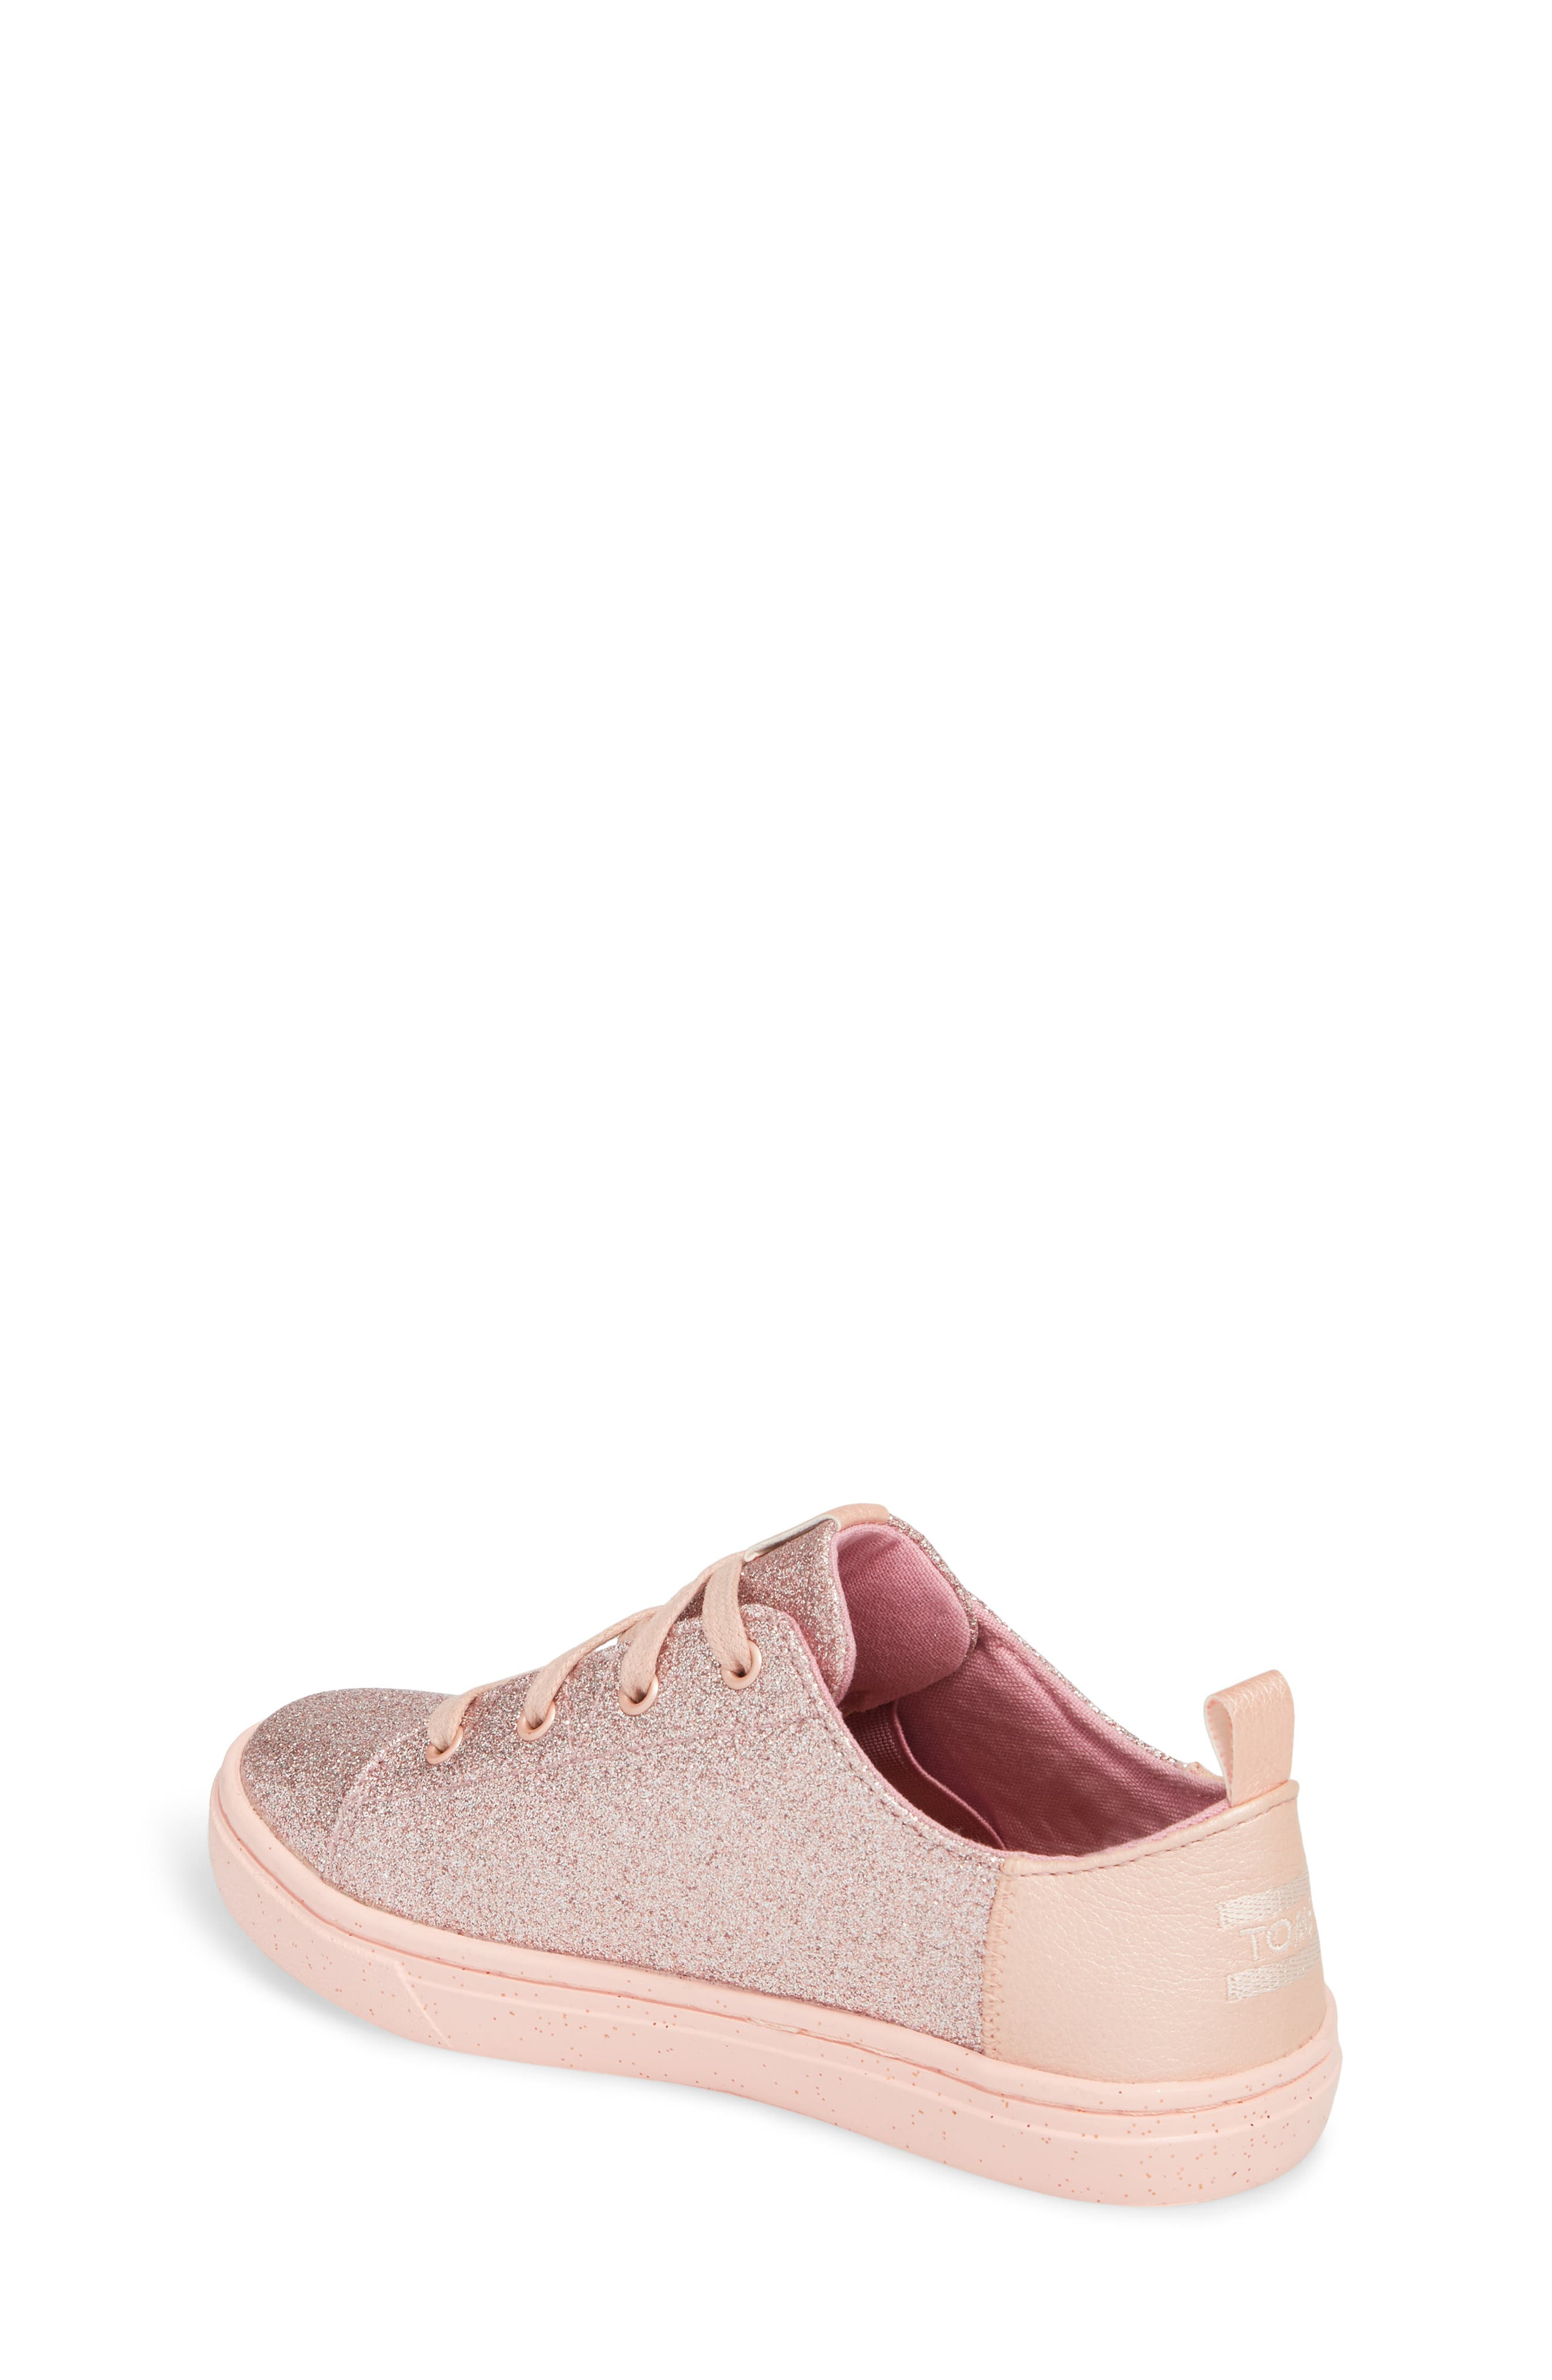 TOMS,                             Lenny Metallic Glitter Sneaker,                             Alternate thumbnail 2, color,                             650